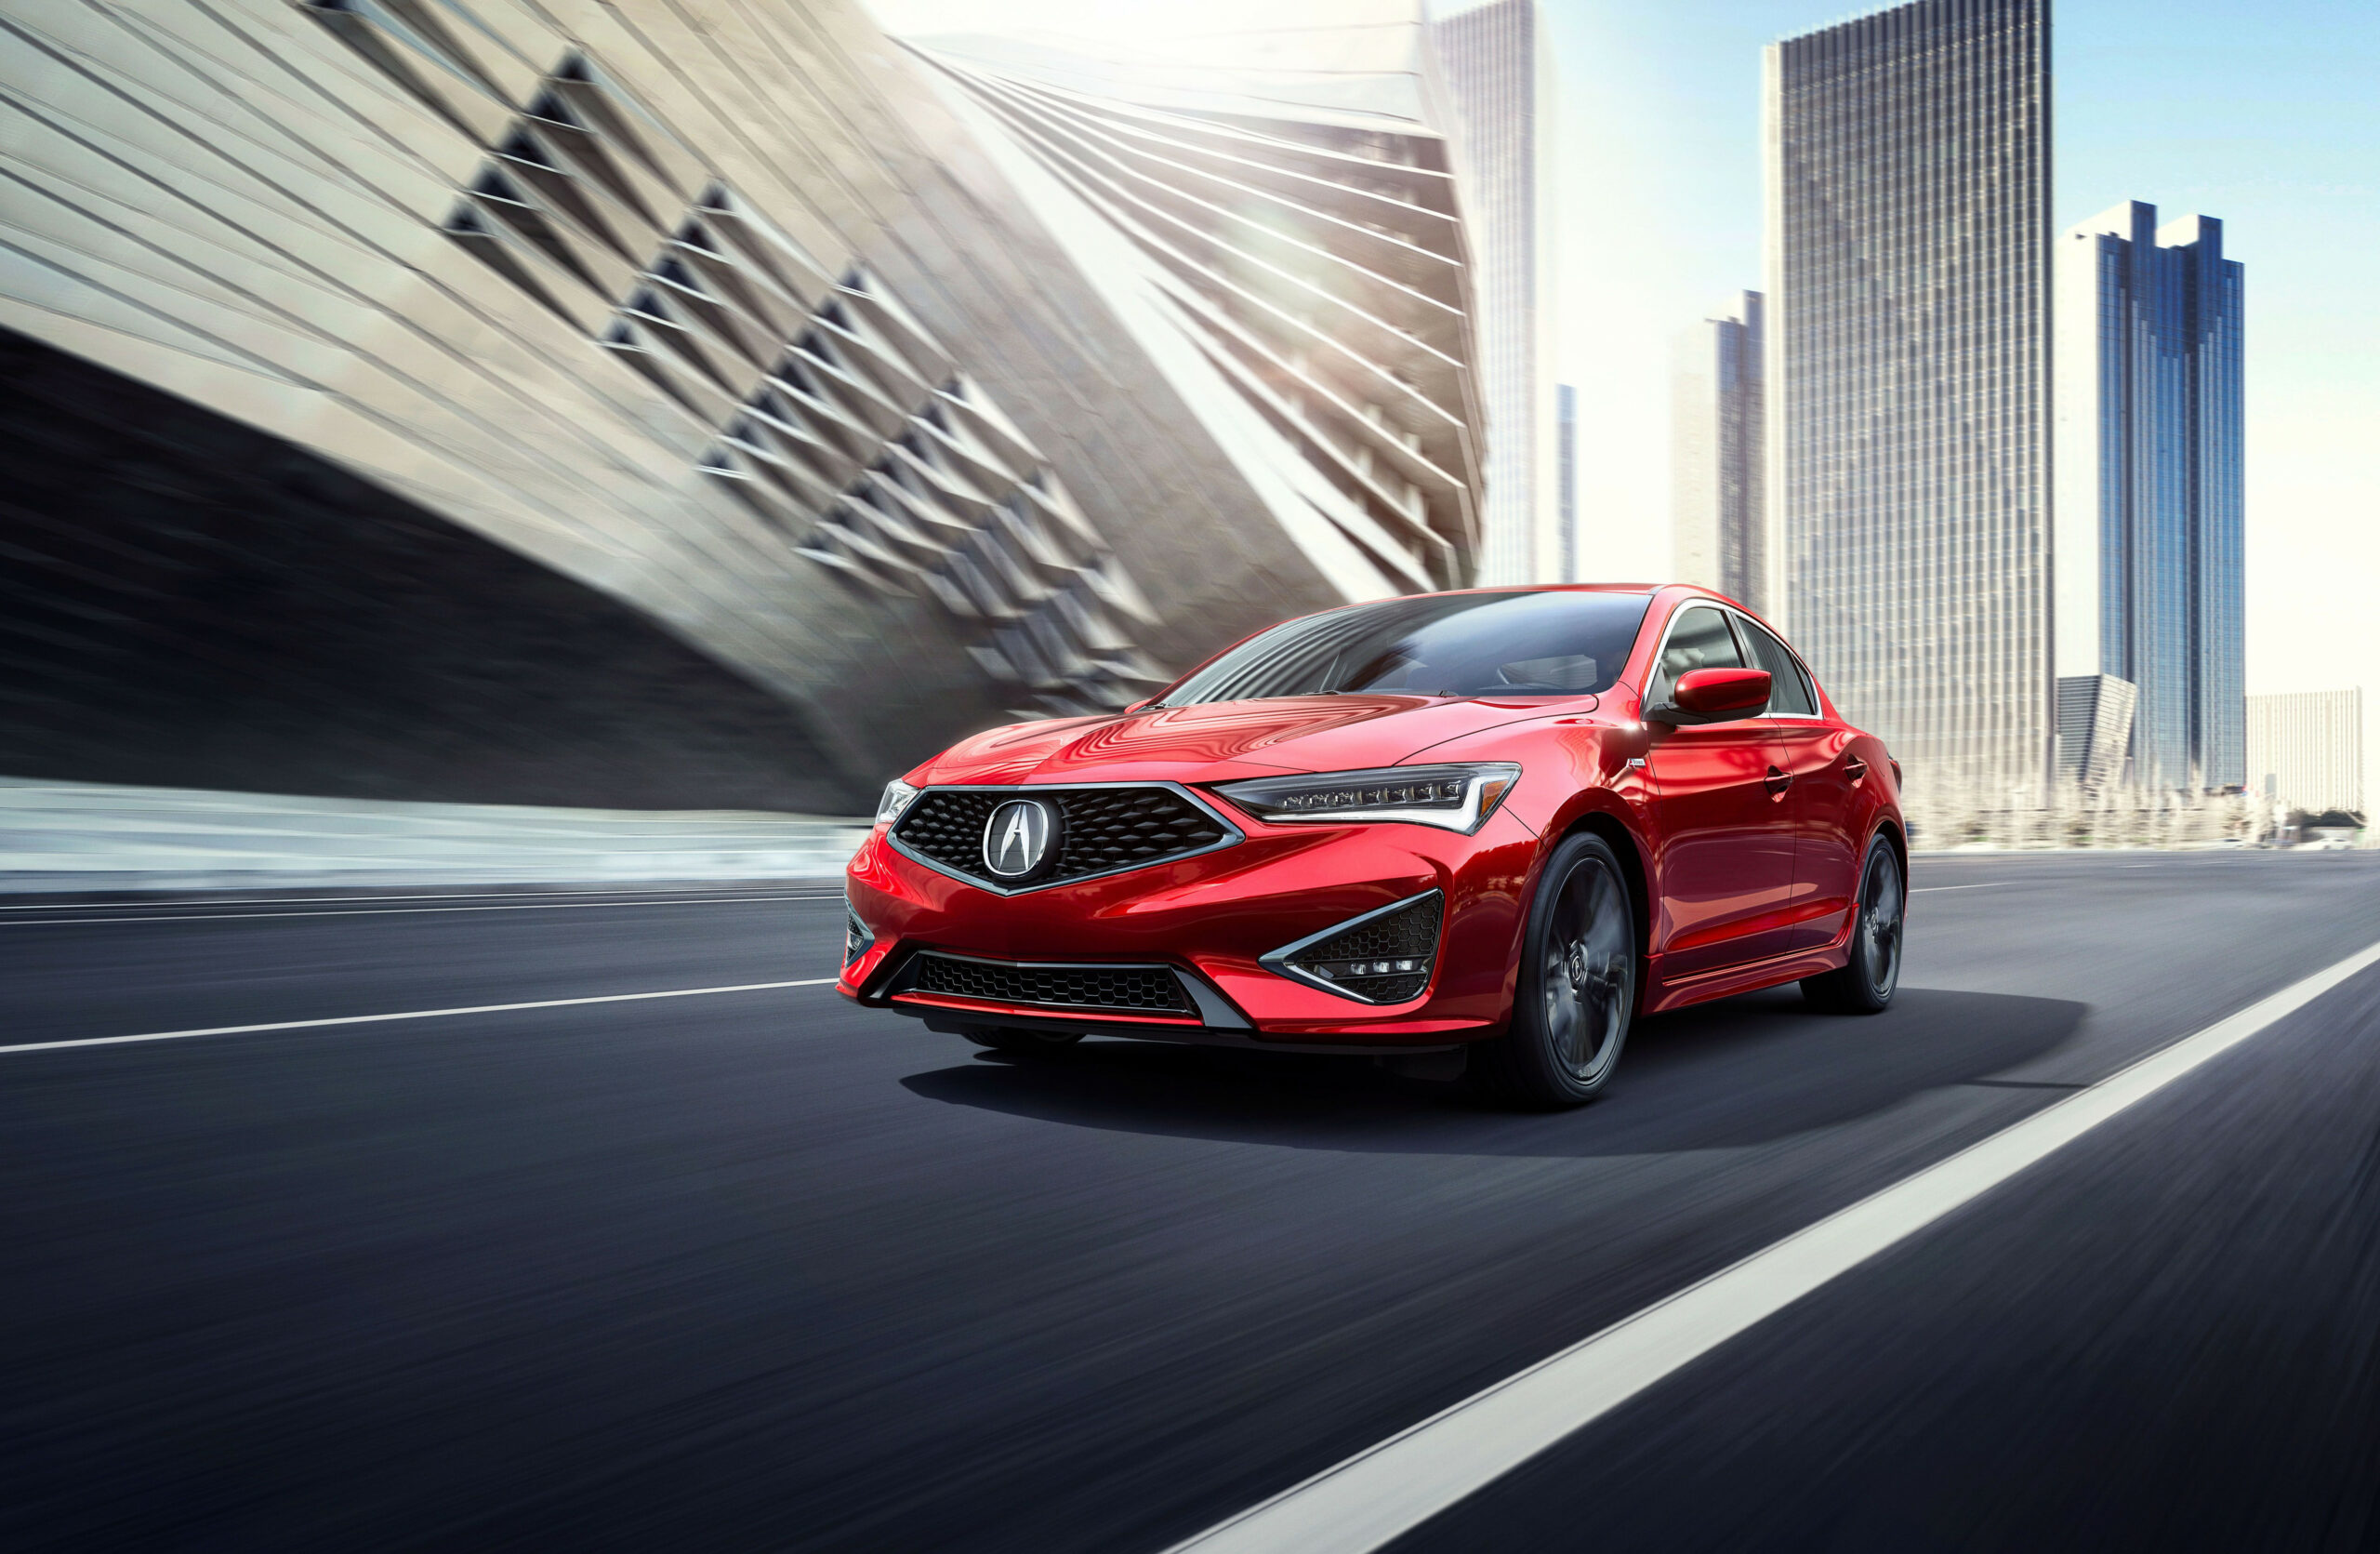 7 Acura ILX Review, Pricing, and Specs - 2020 acura xlt